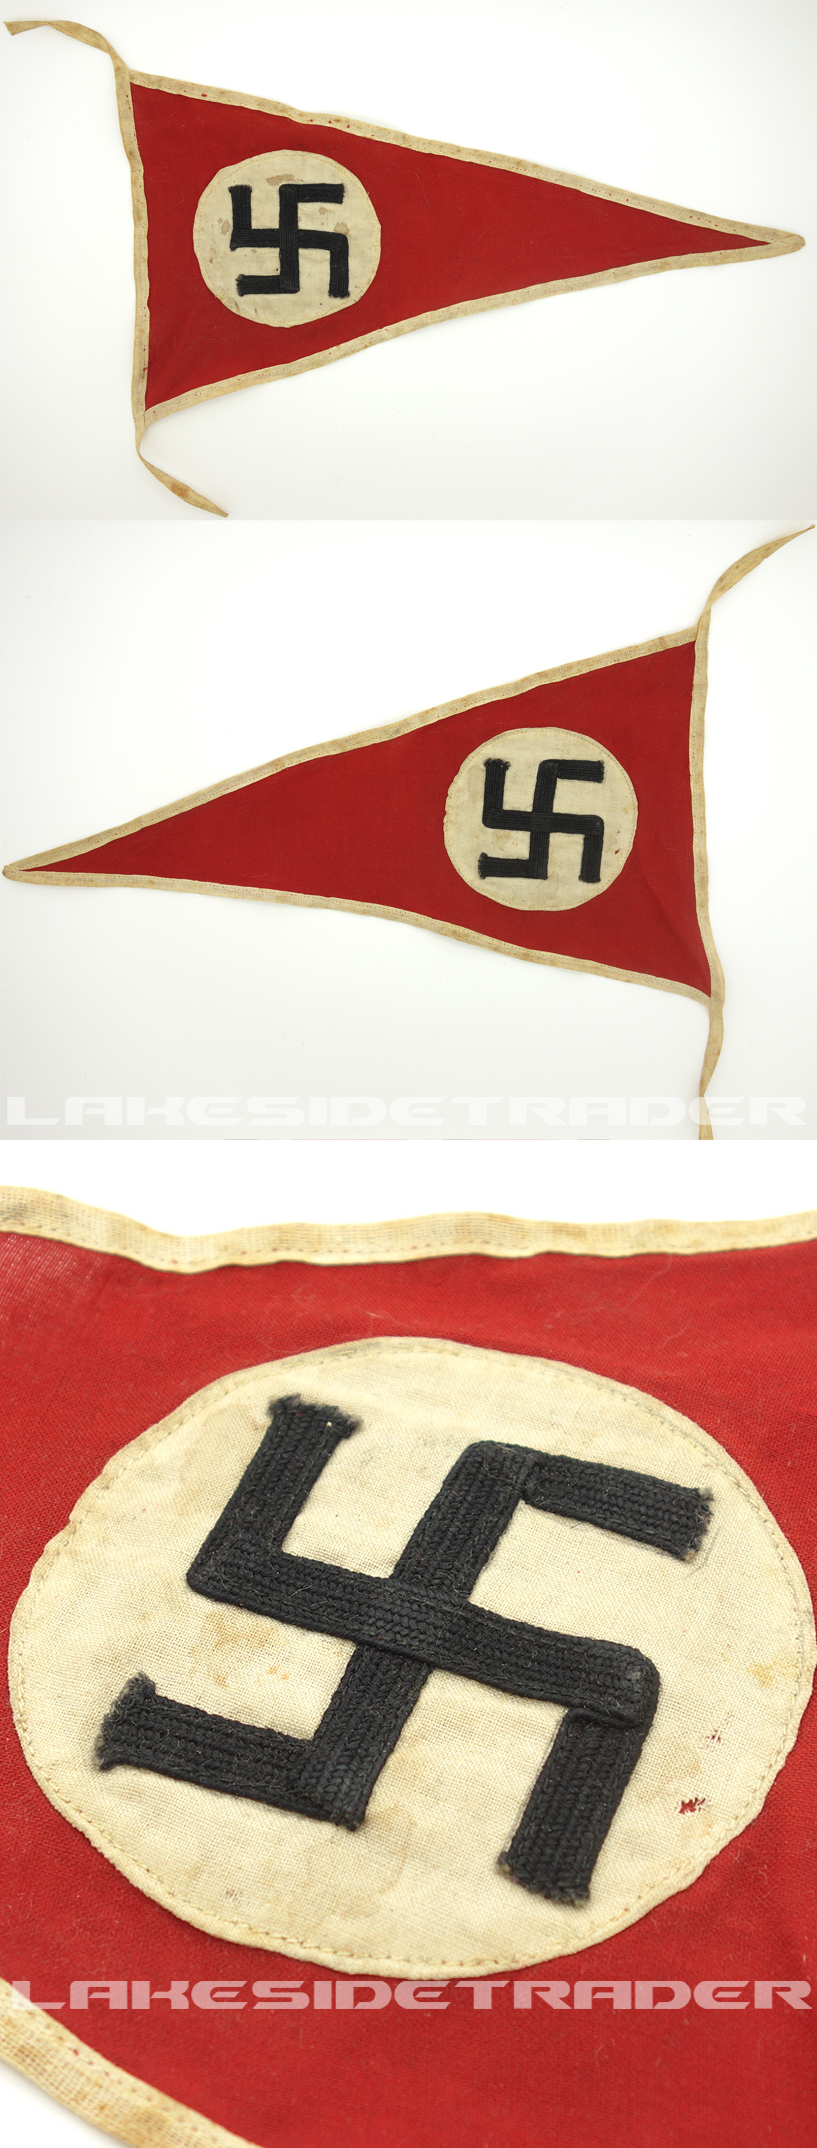 Early NSDAP Party Pennant